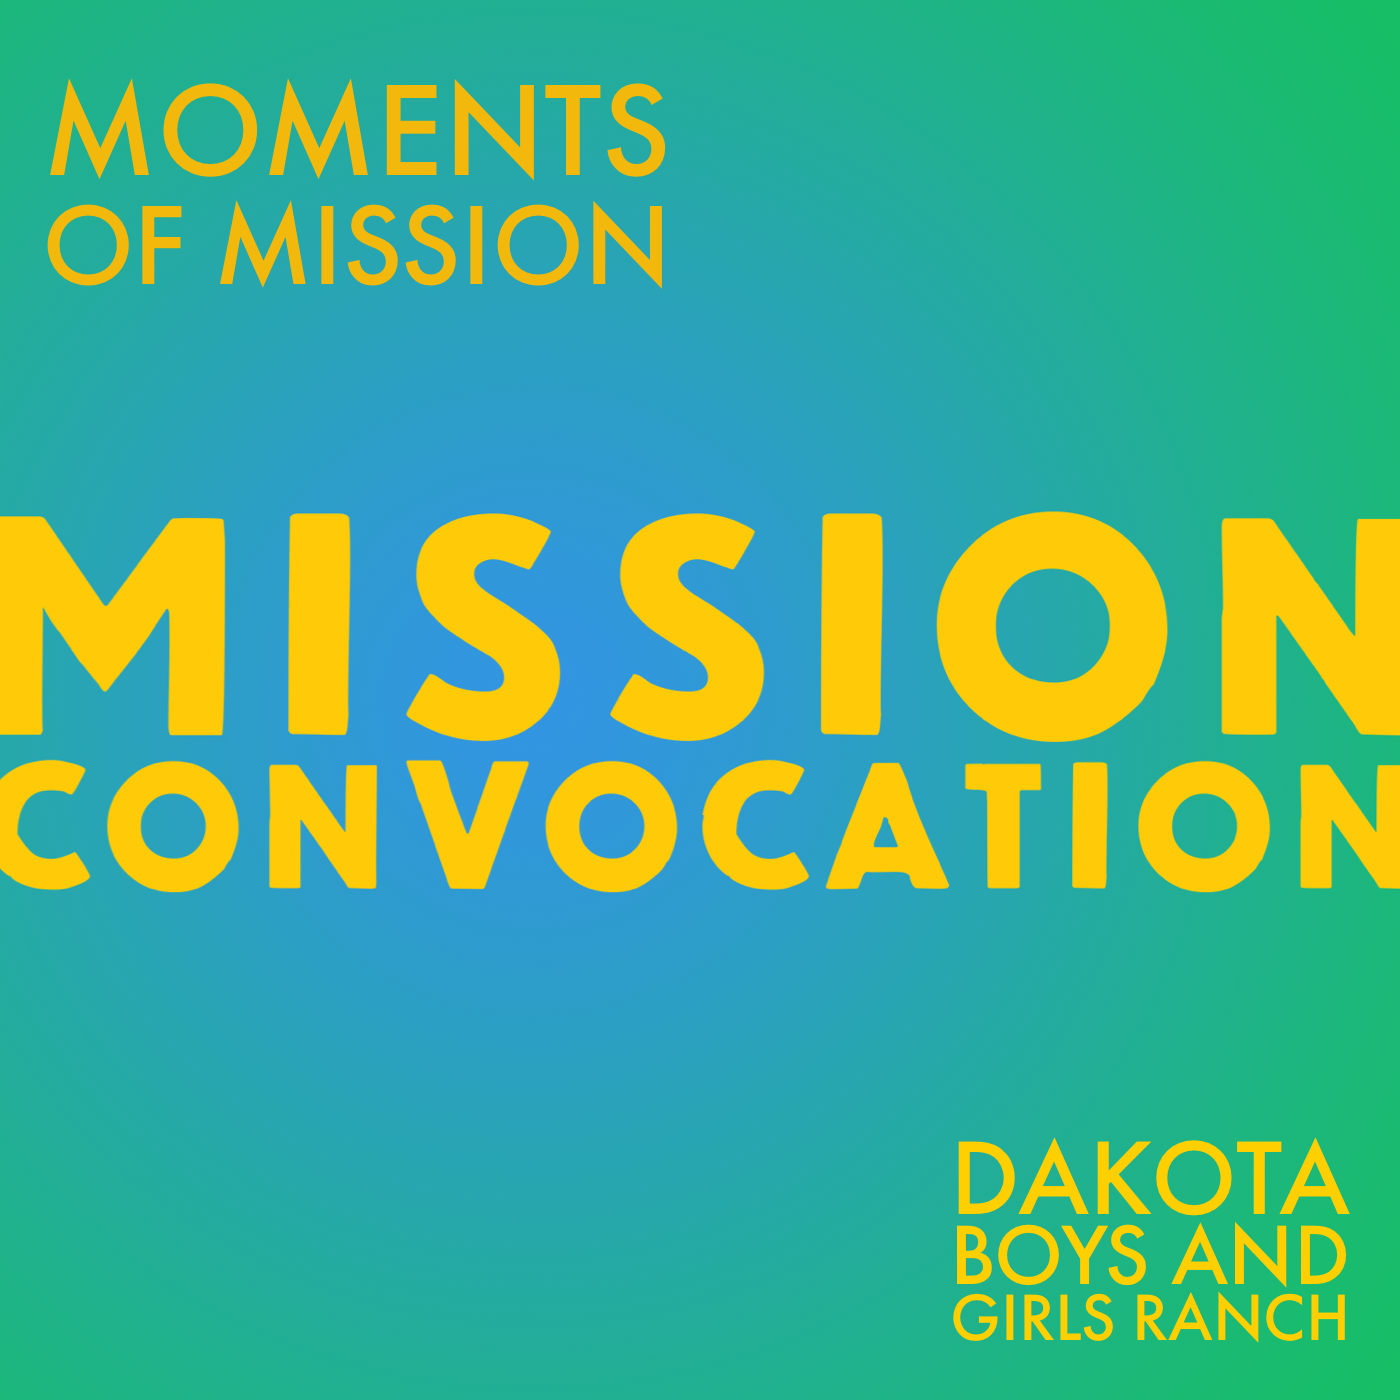 Moments of Mission – Dakota Boys and Girls Ranch